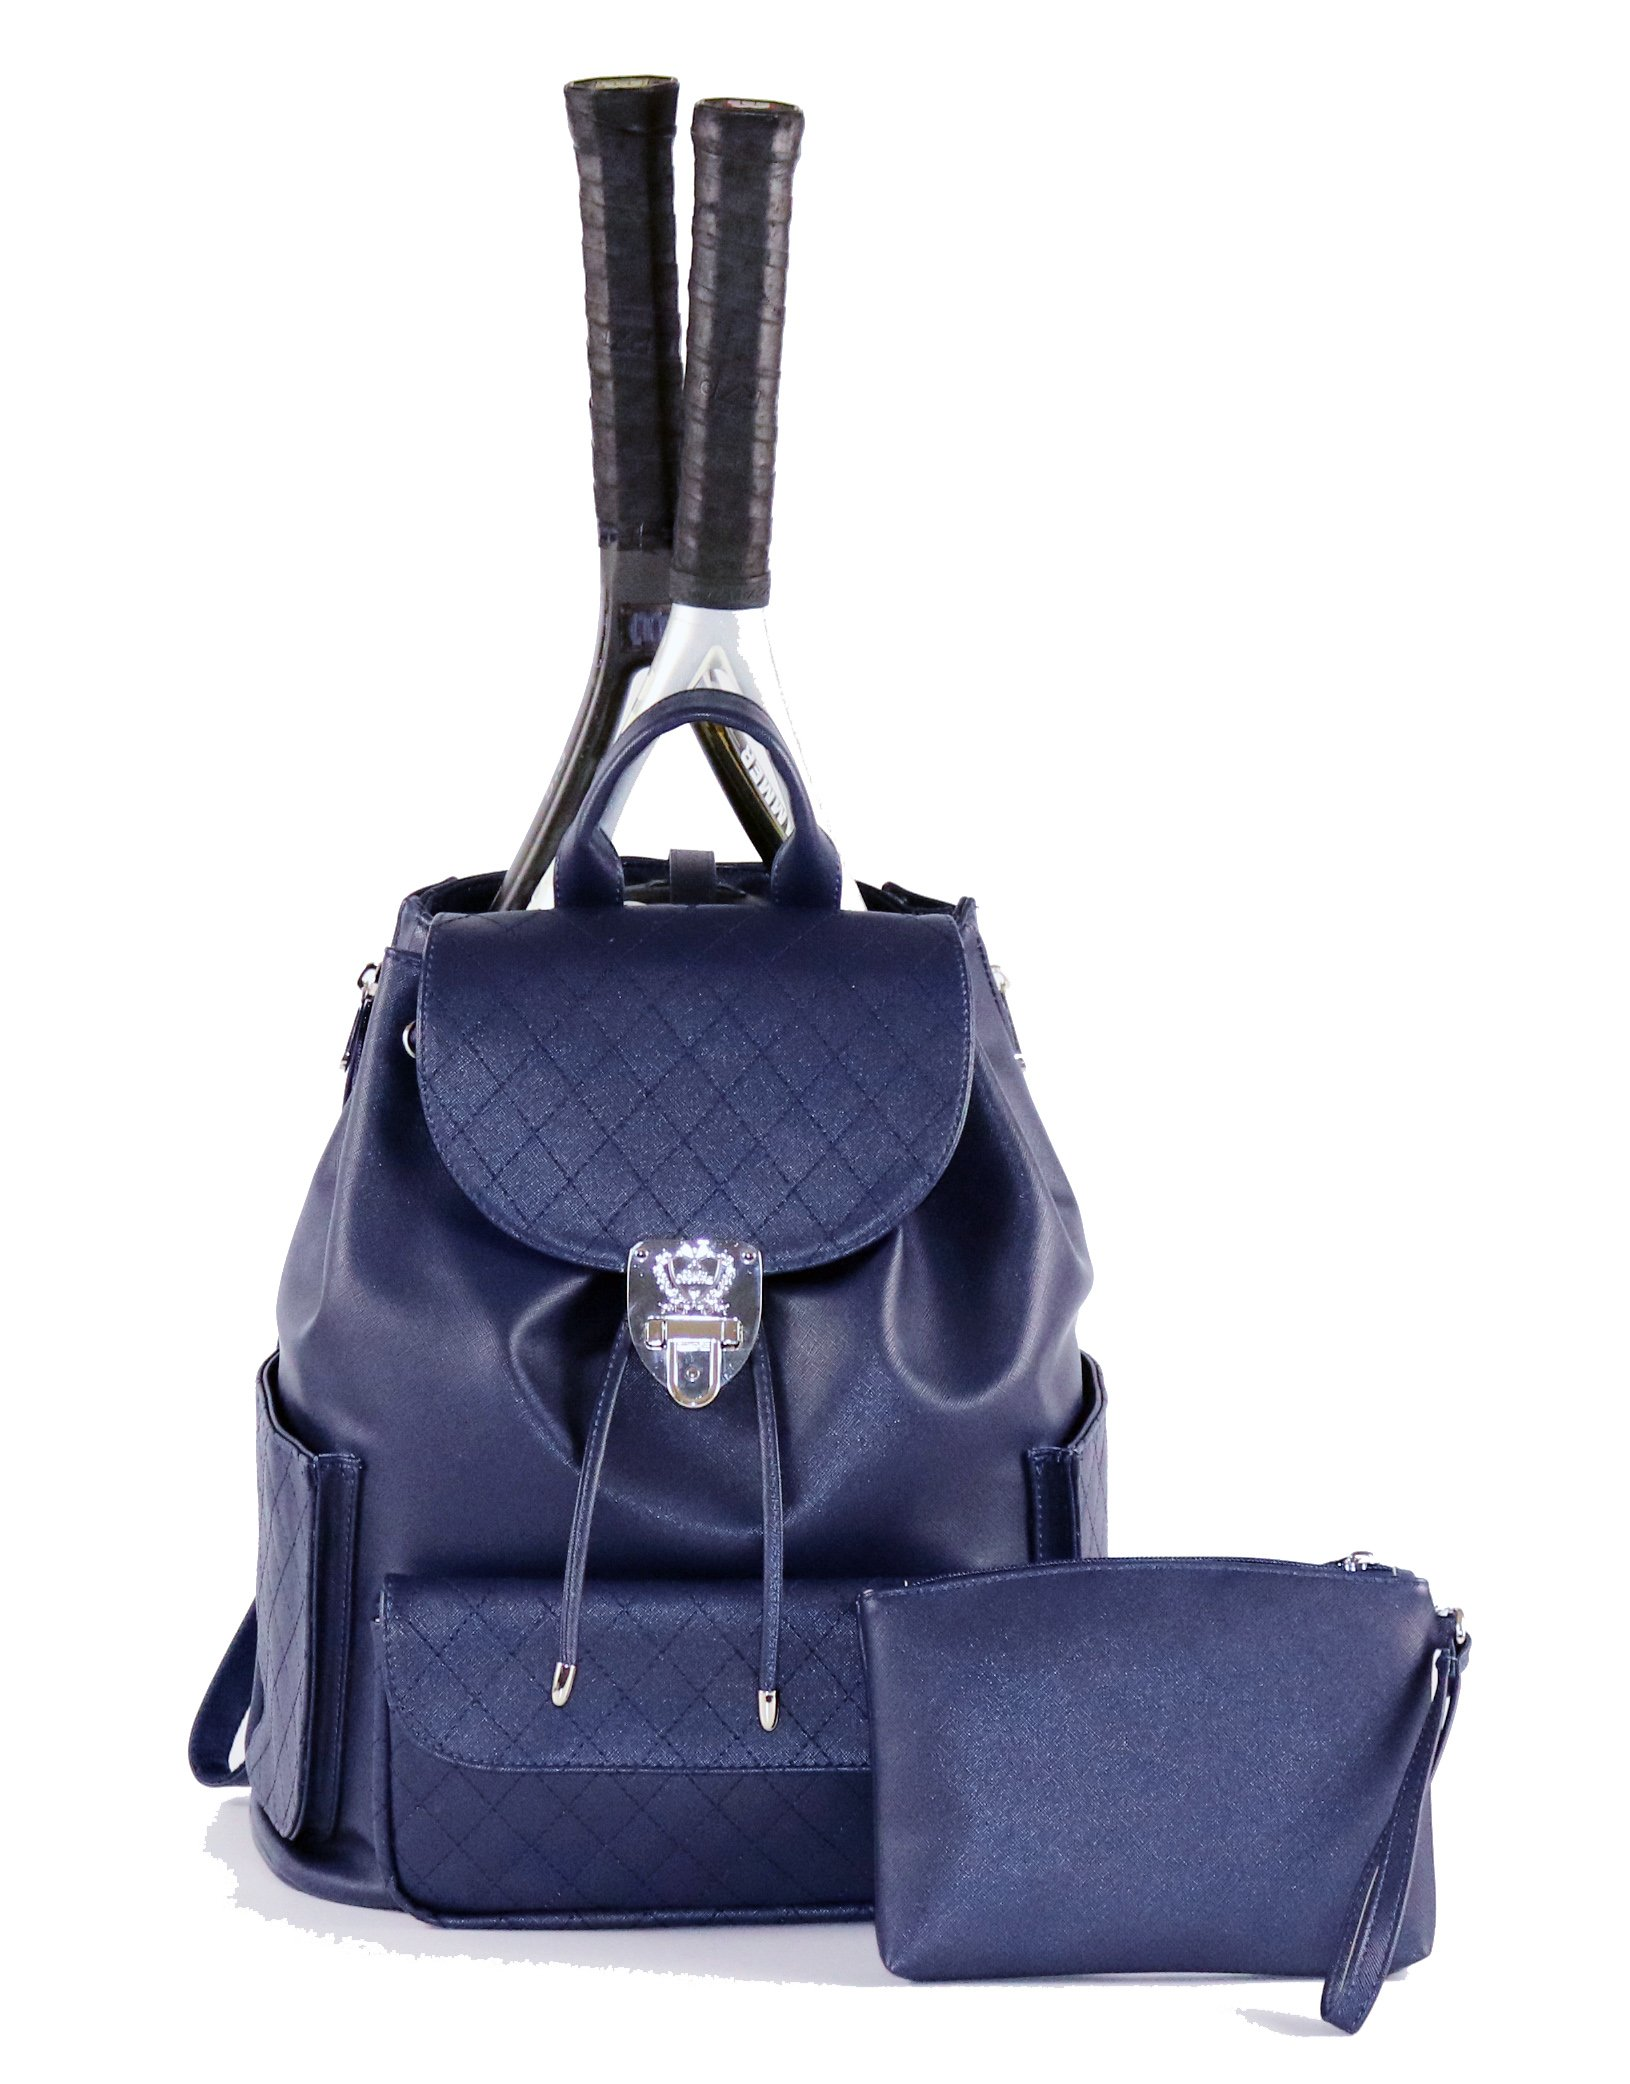 Court Couture Hampton Quilted Tennis Backpack - Navy